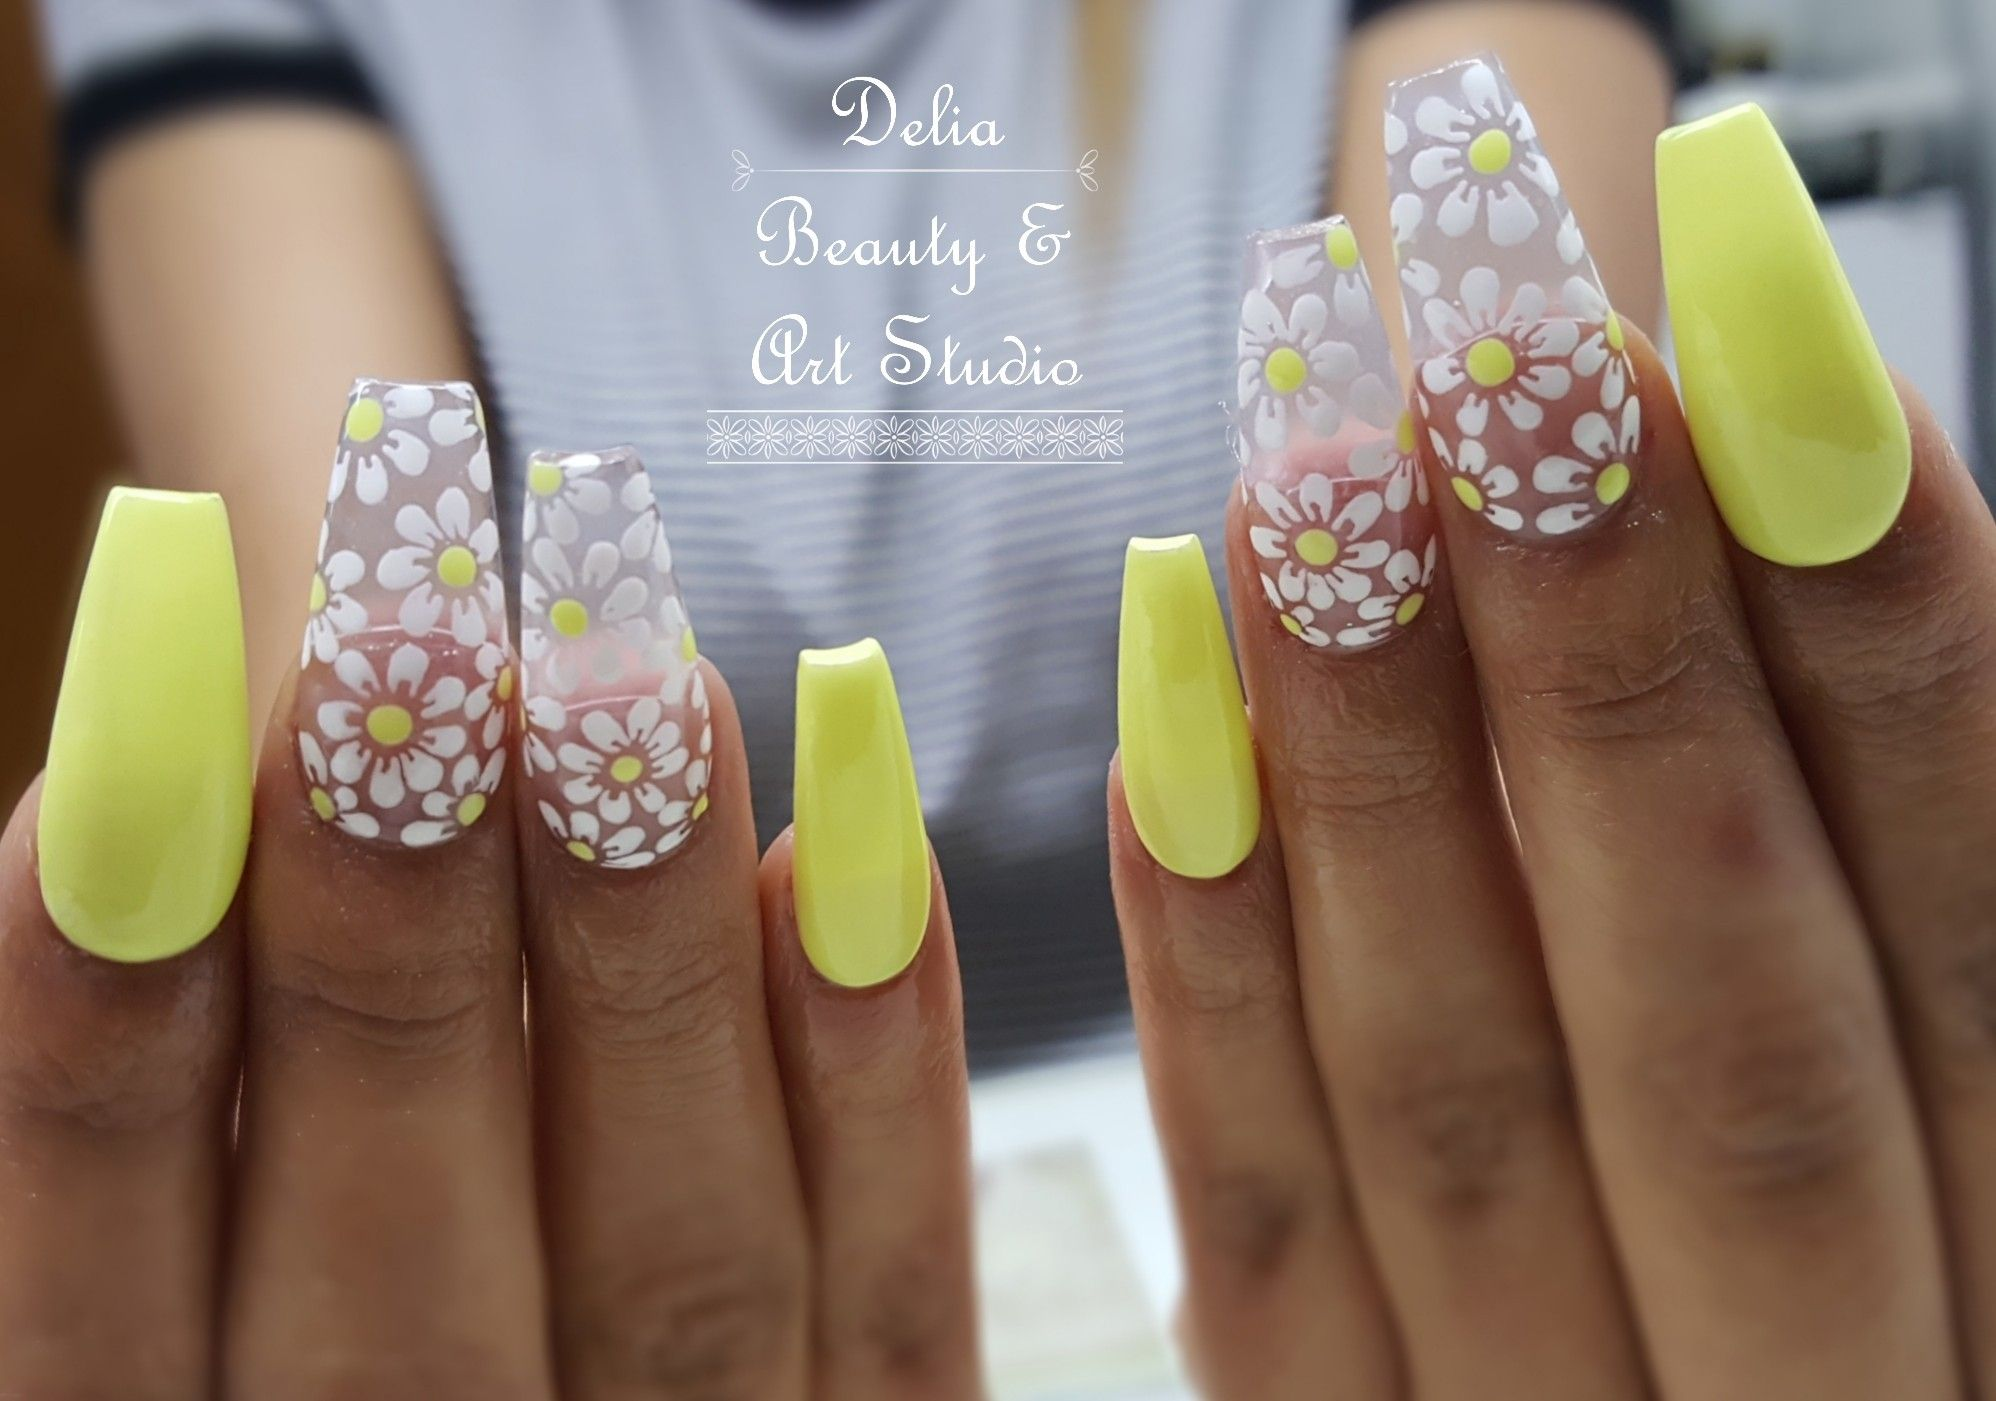 Yellow Nails Acrylics White Flower Design Free Handed Flower Nail Art Long Nails Nails Long Nails Yellow Nails